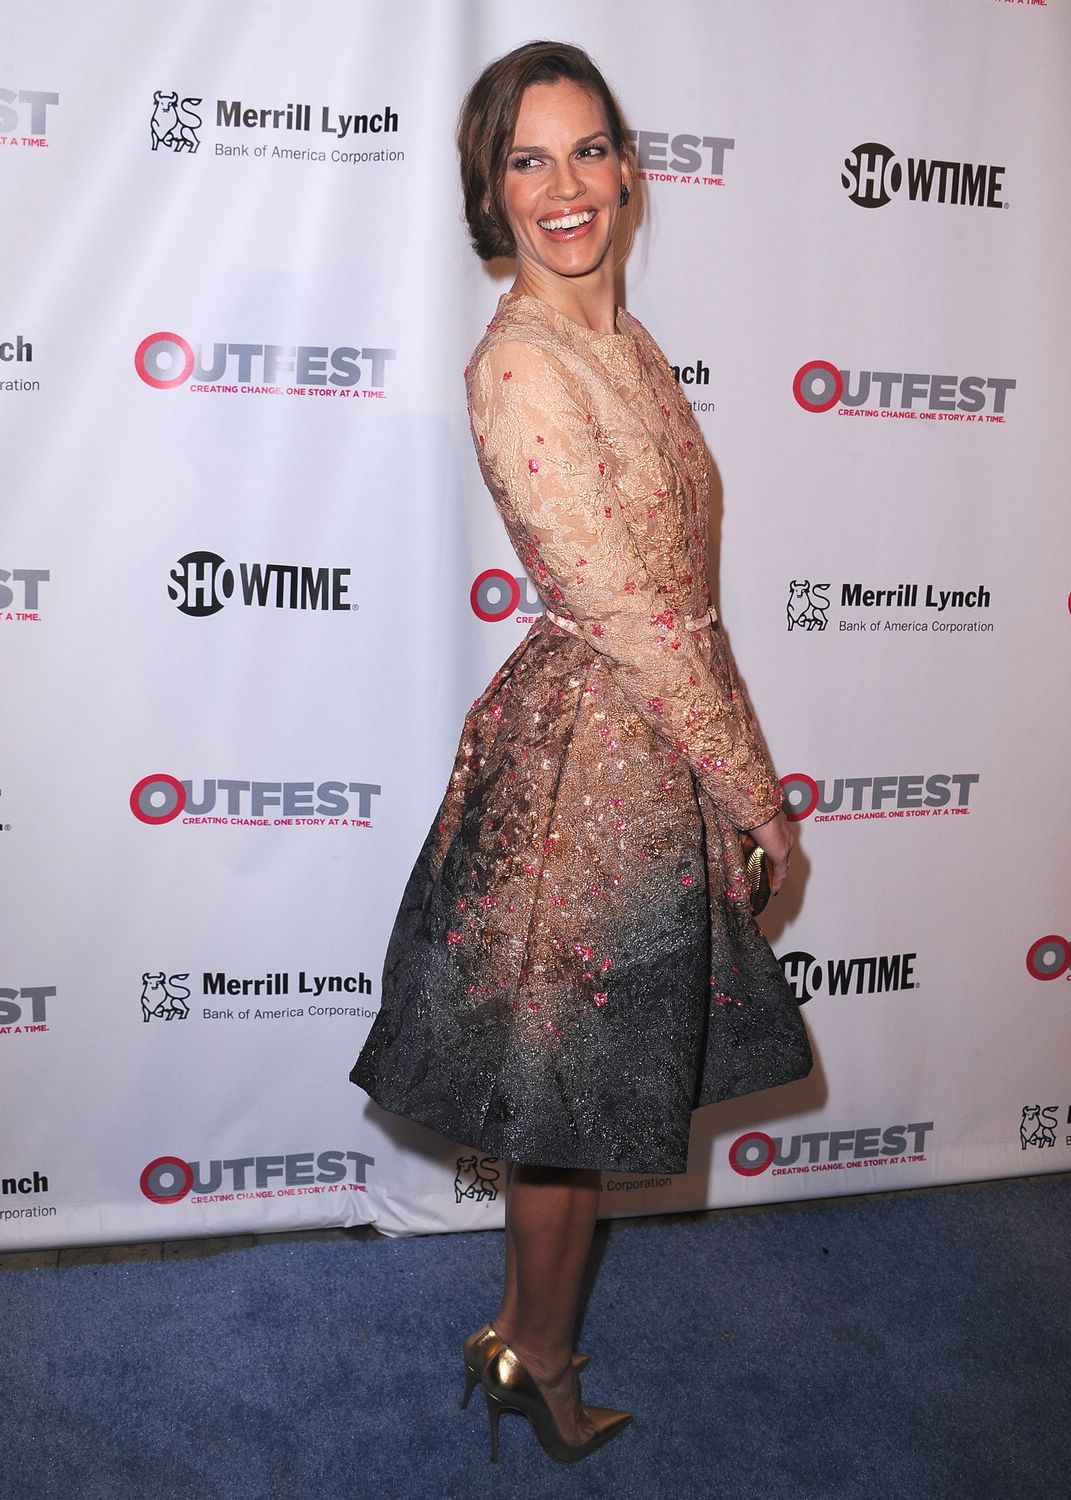 Hilary-swank-legacy-awards